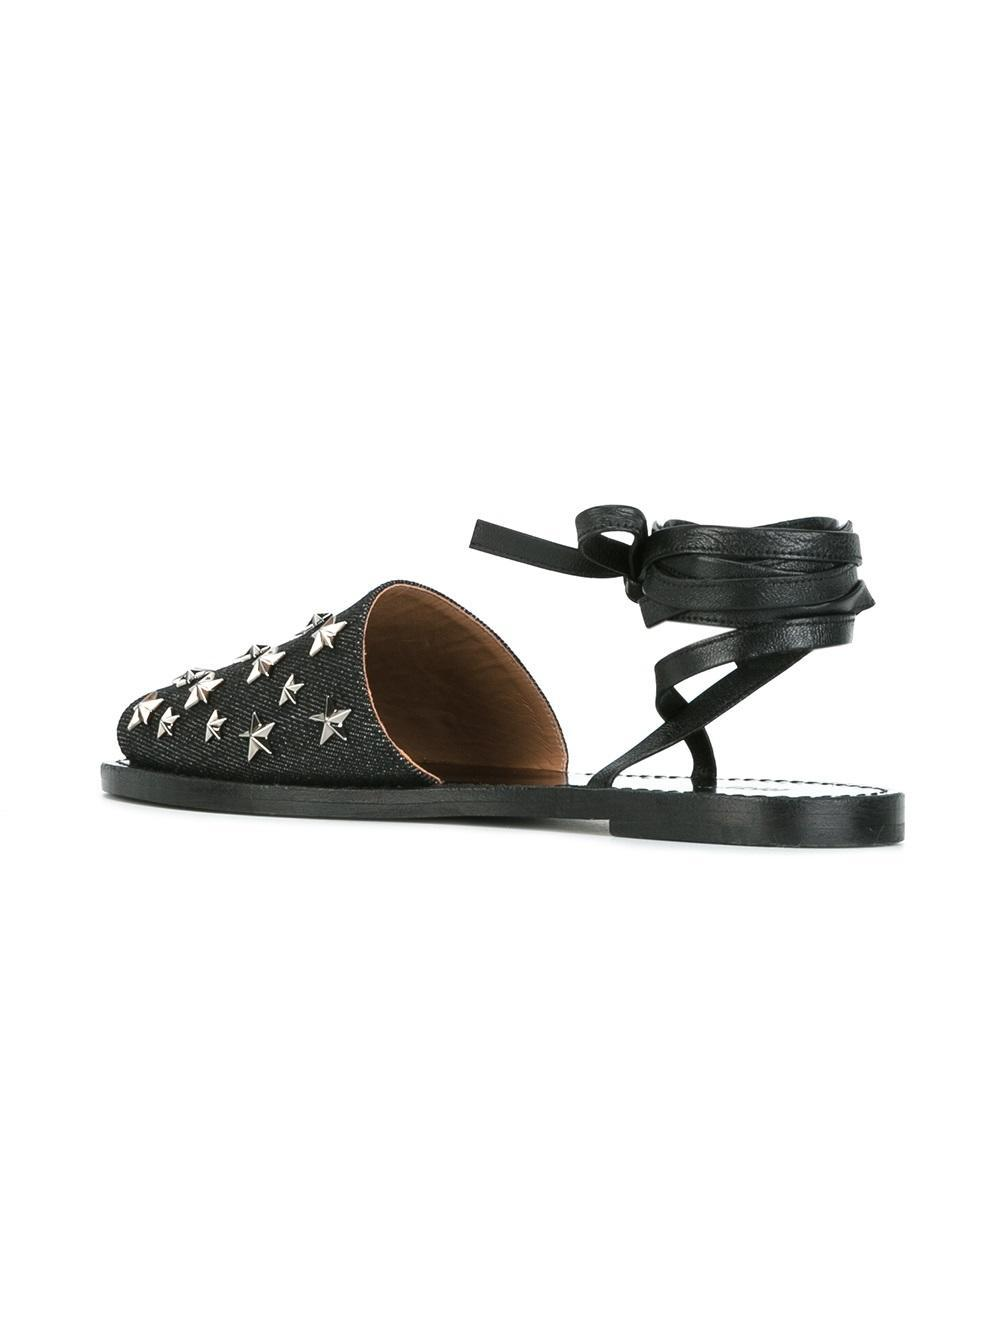 94360a879 RED Valentino Star Studded Sandals in Black - Lyst